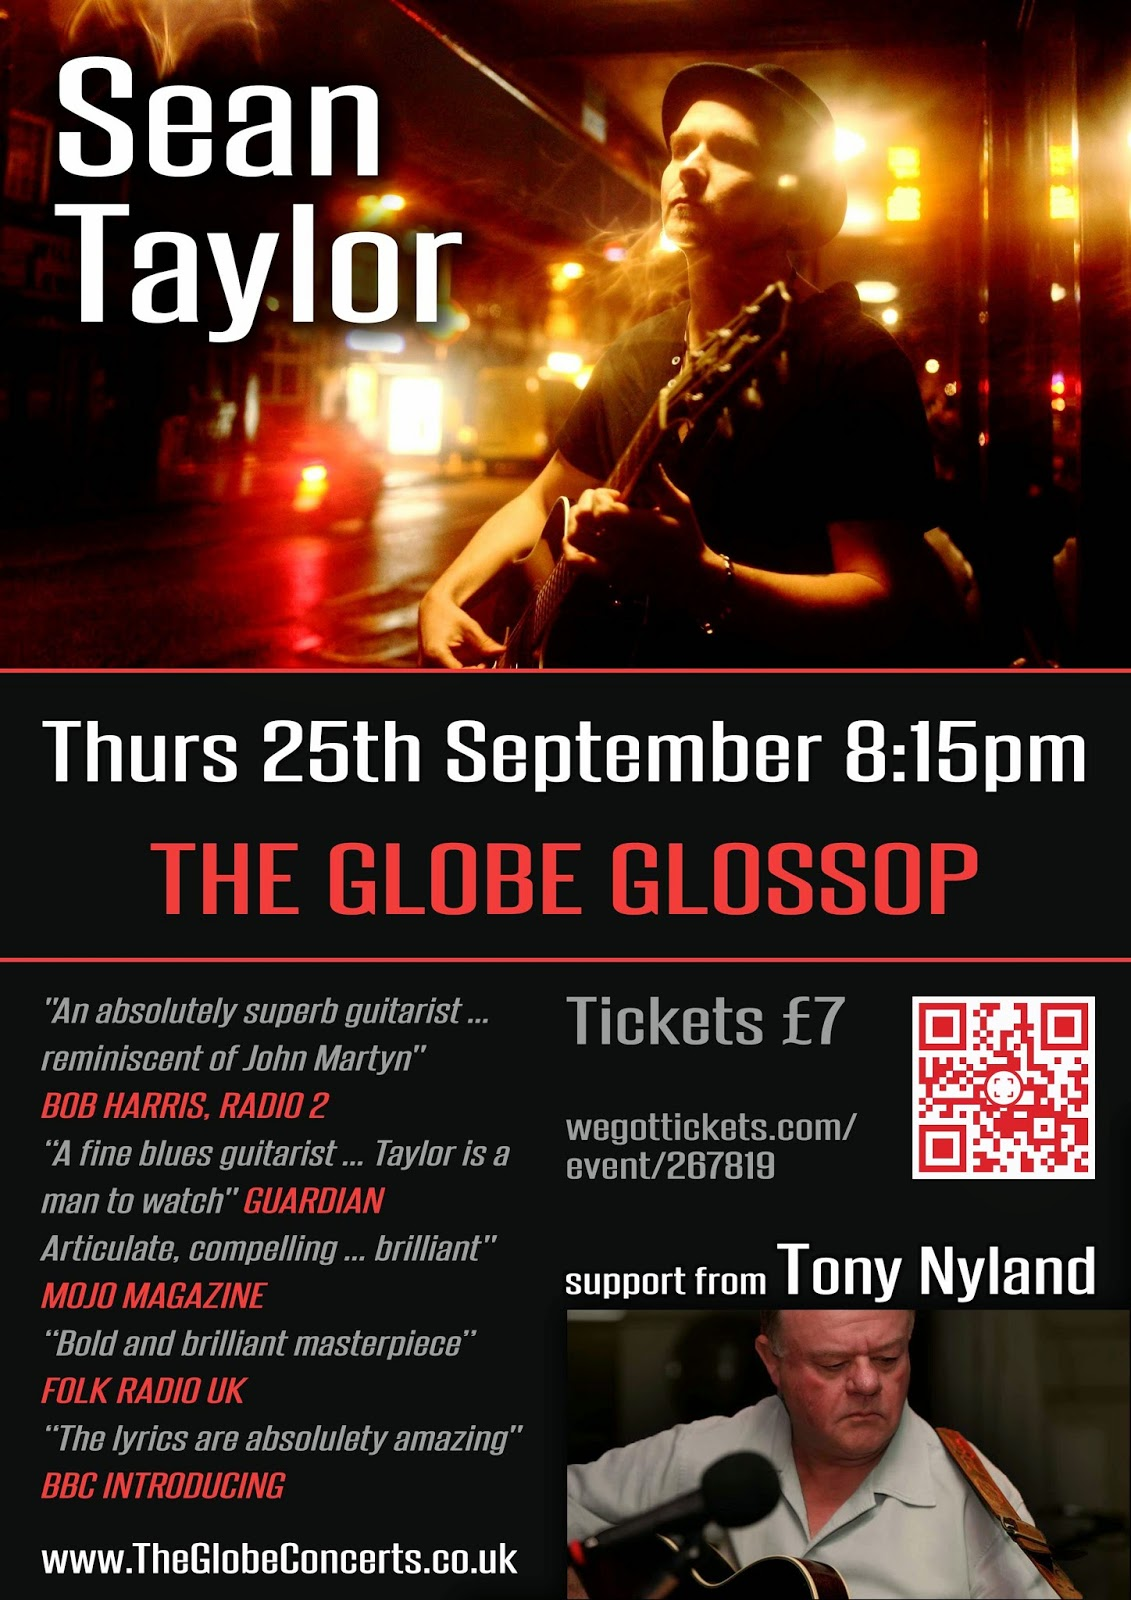 Sean Taylor at The Globe Glossop